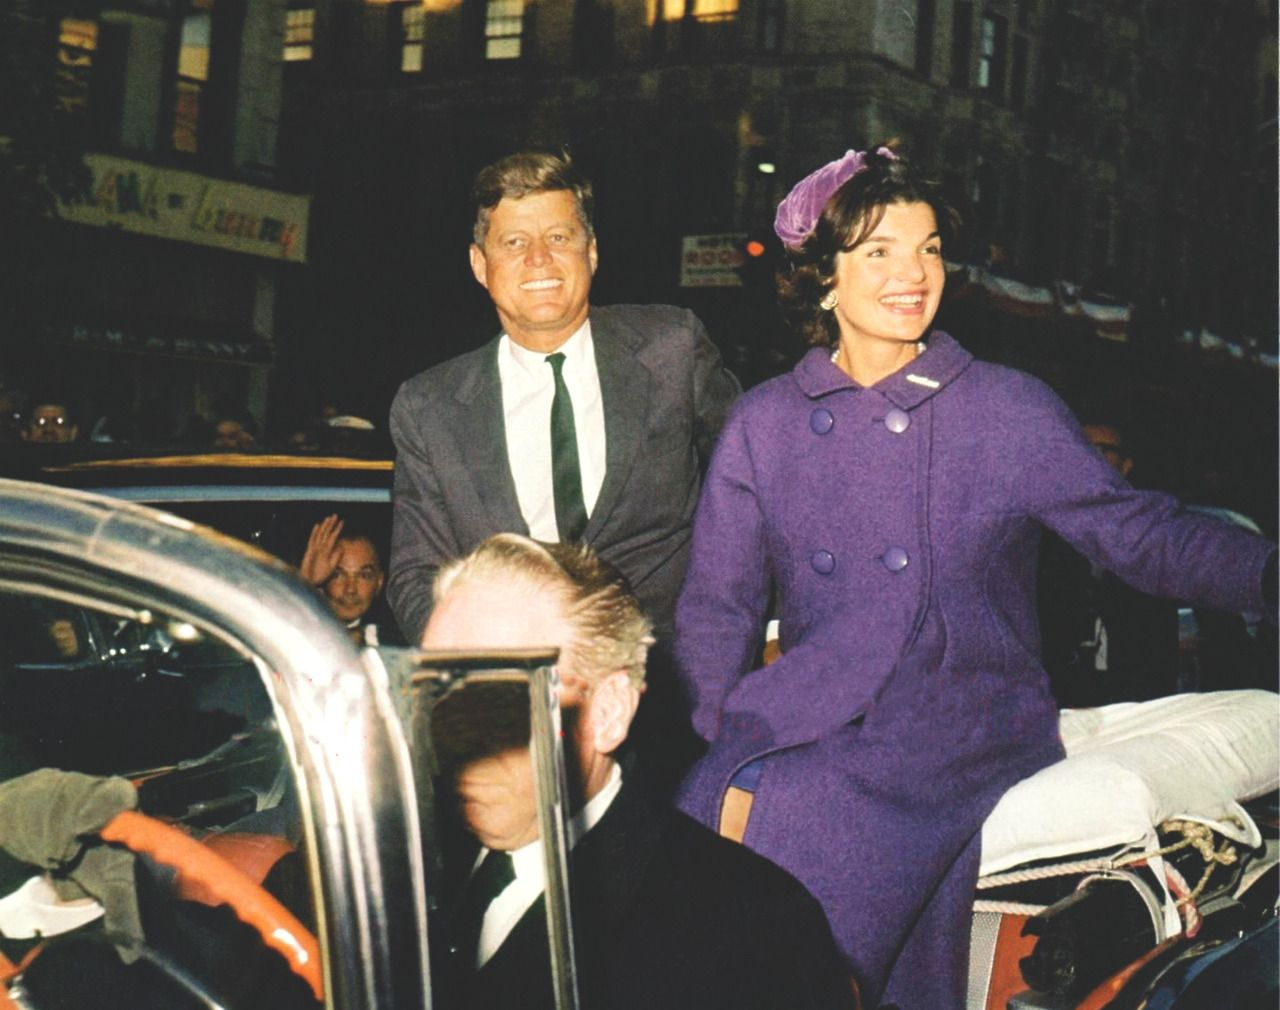 1960 Octobre John F Kennedy And Wife Jacqueline Kennedy Campaigning In New York City レトロファッション ジャクリーン ケネディ